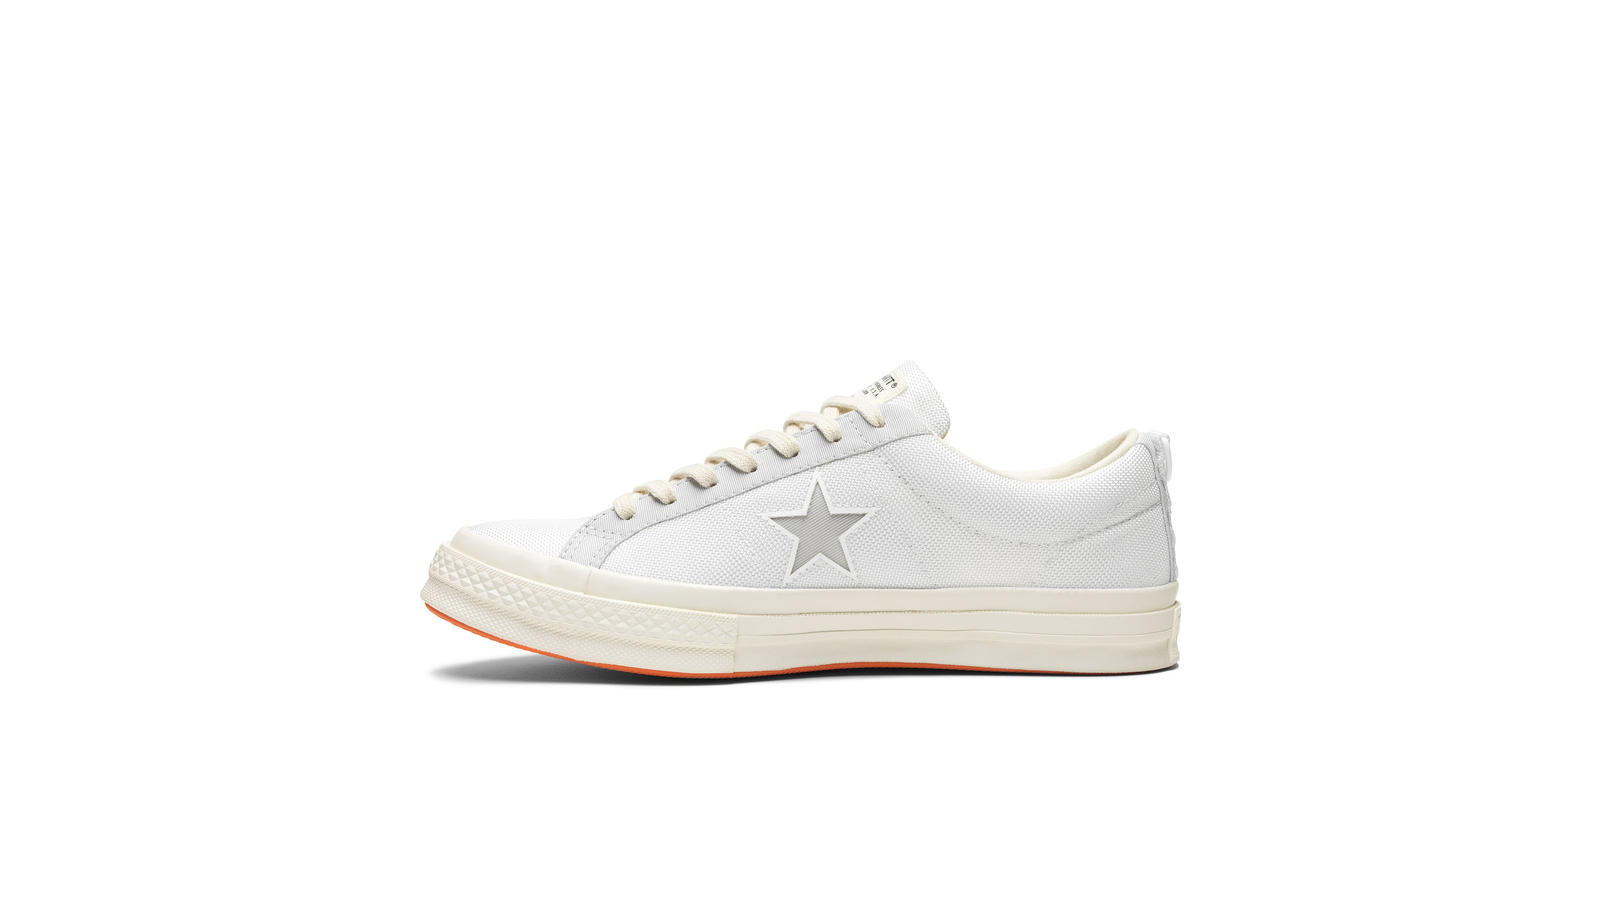 Converse x Carhartt WIP One Star Collection 8